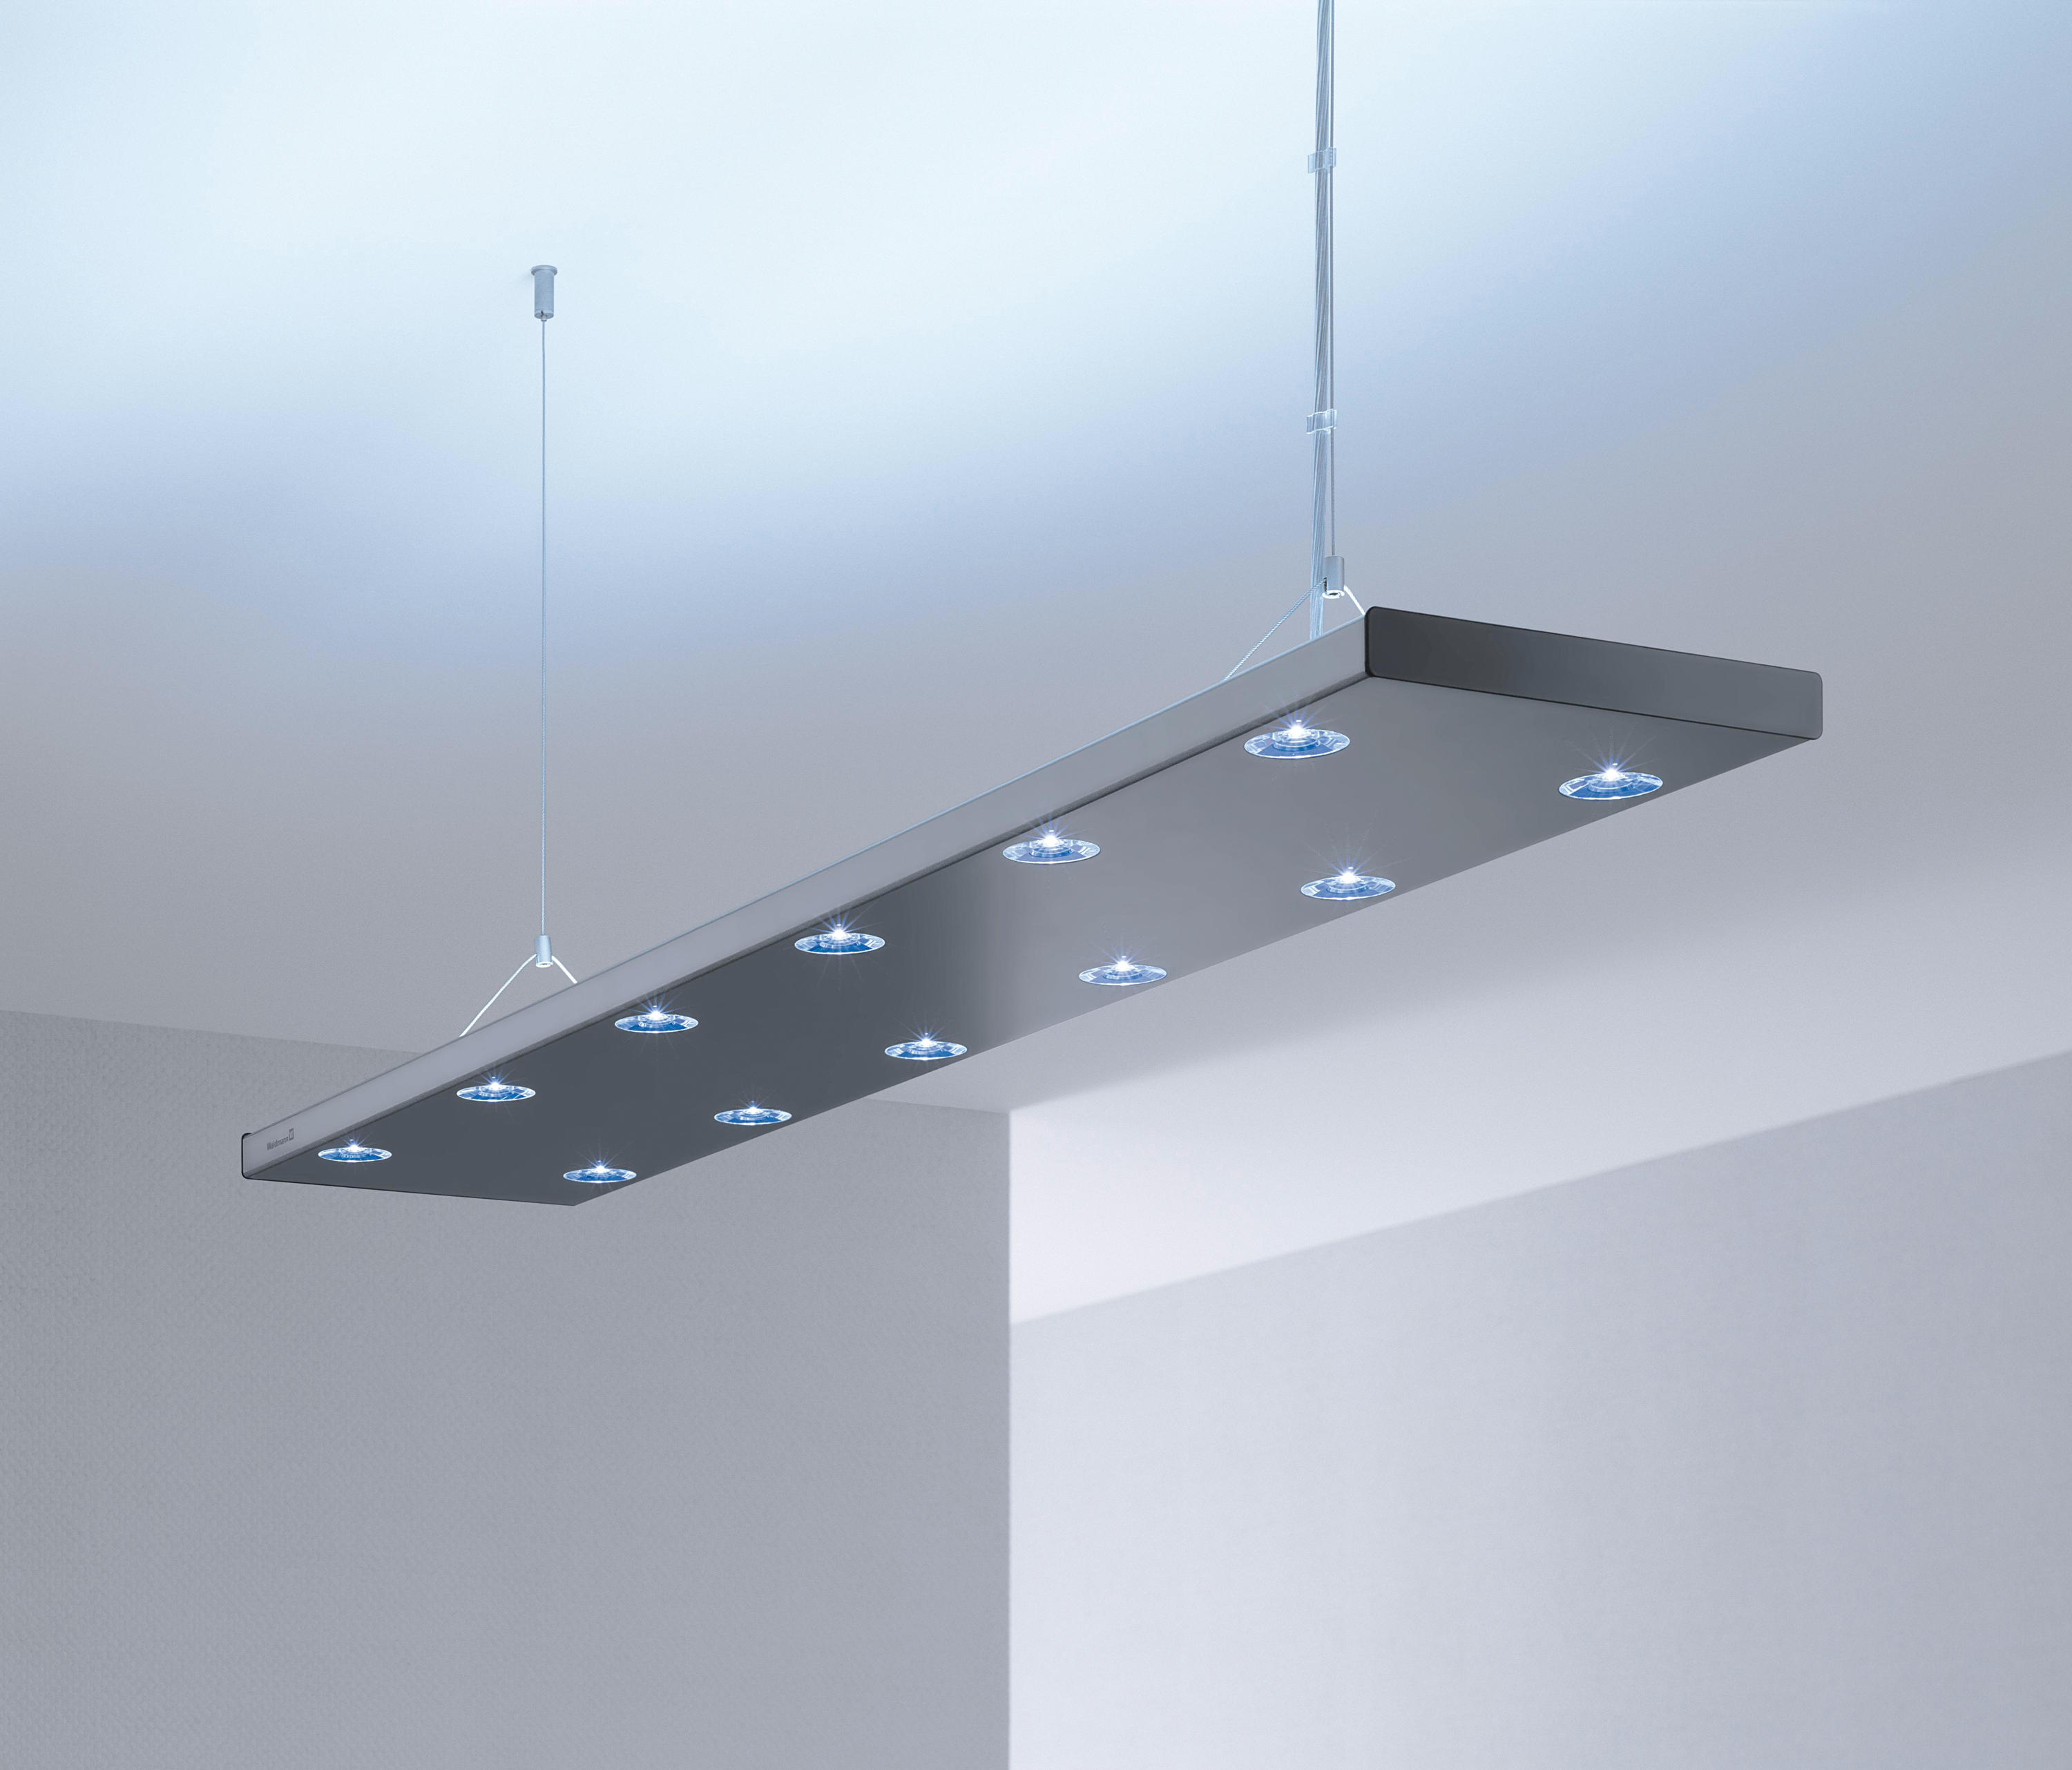 Hybrid led suspended luminaire pendant strip lights by h for Suspente luminaire